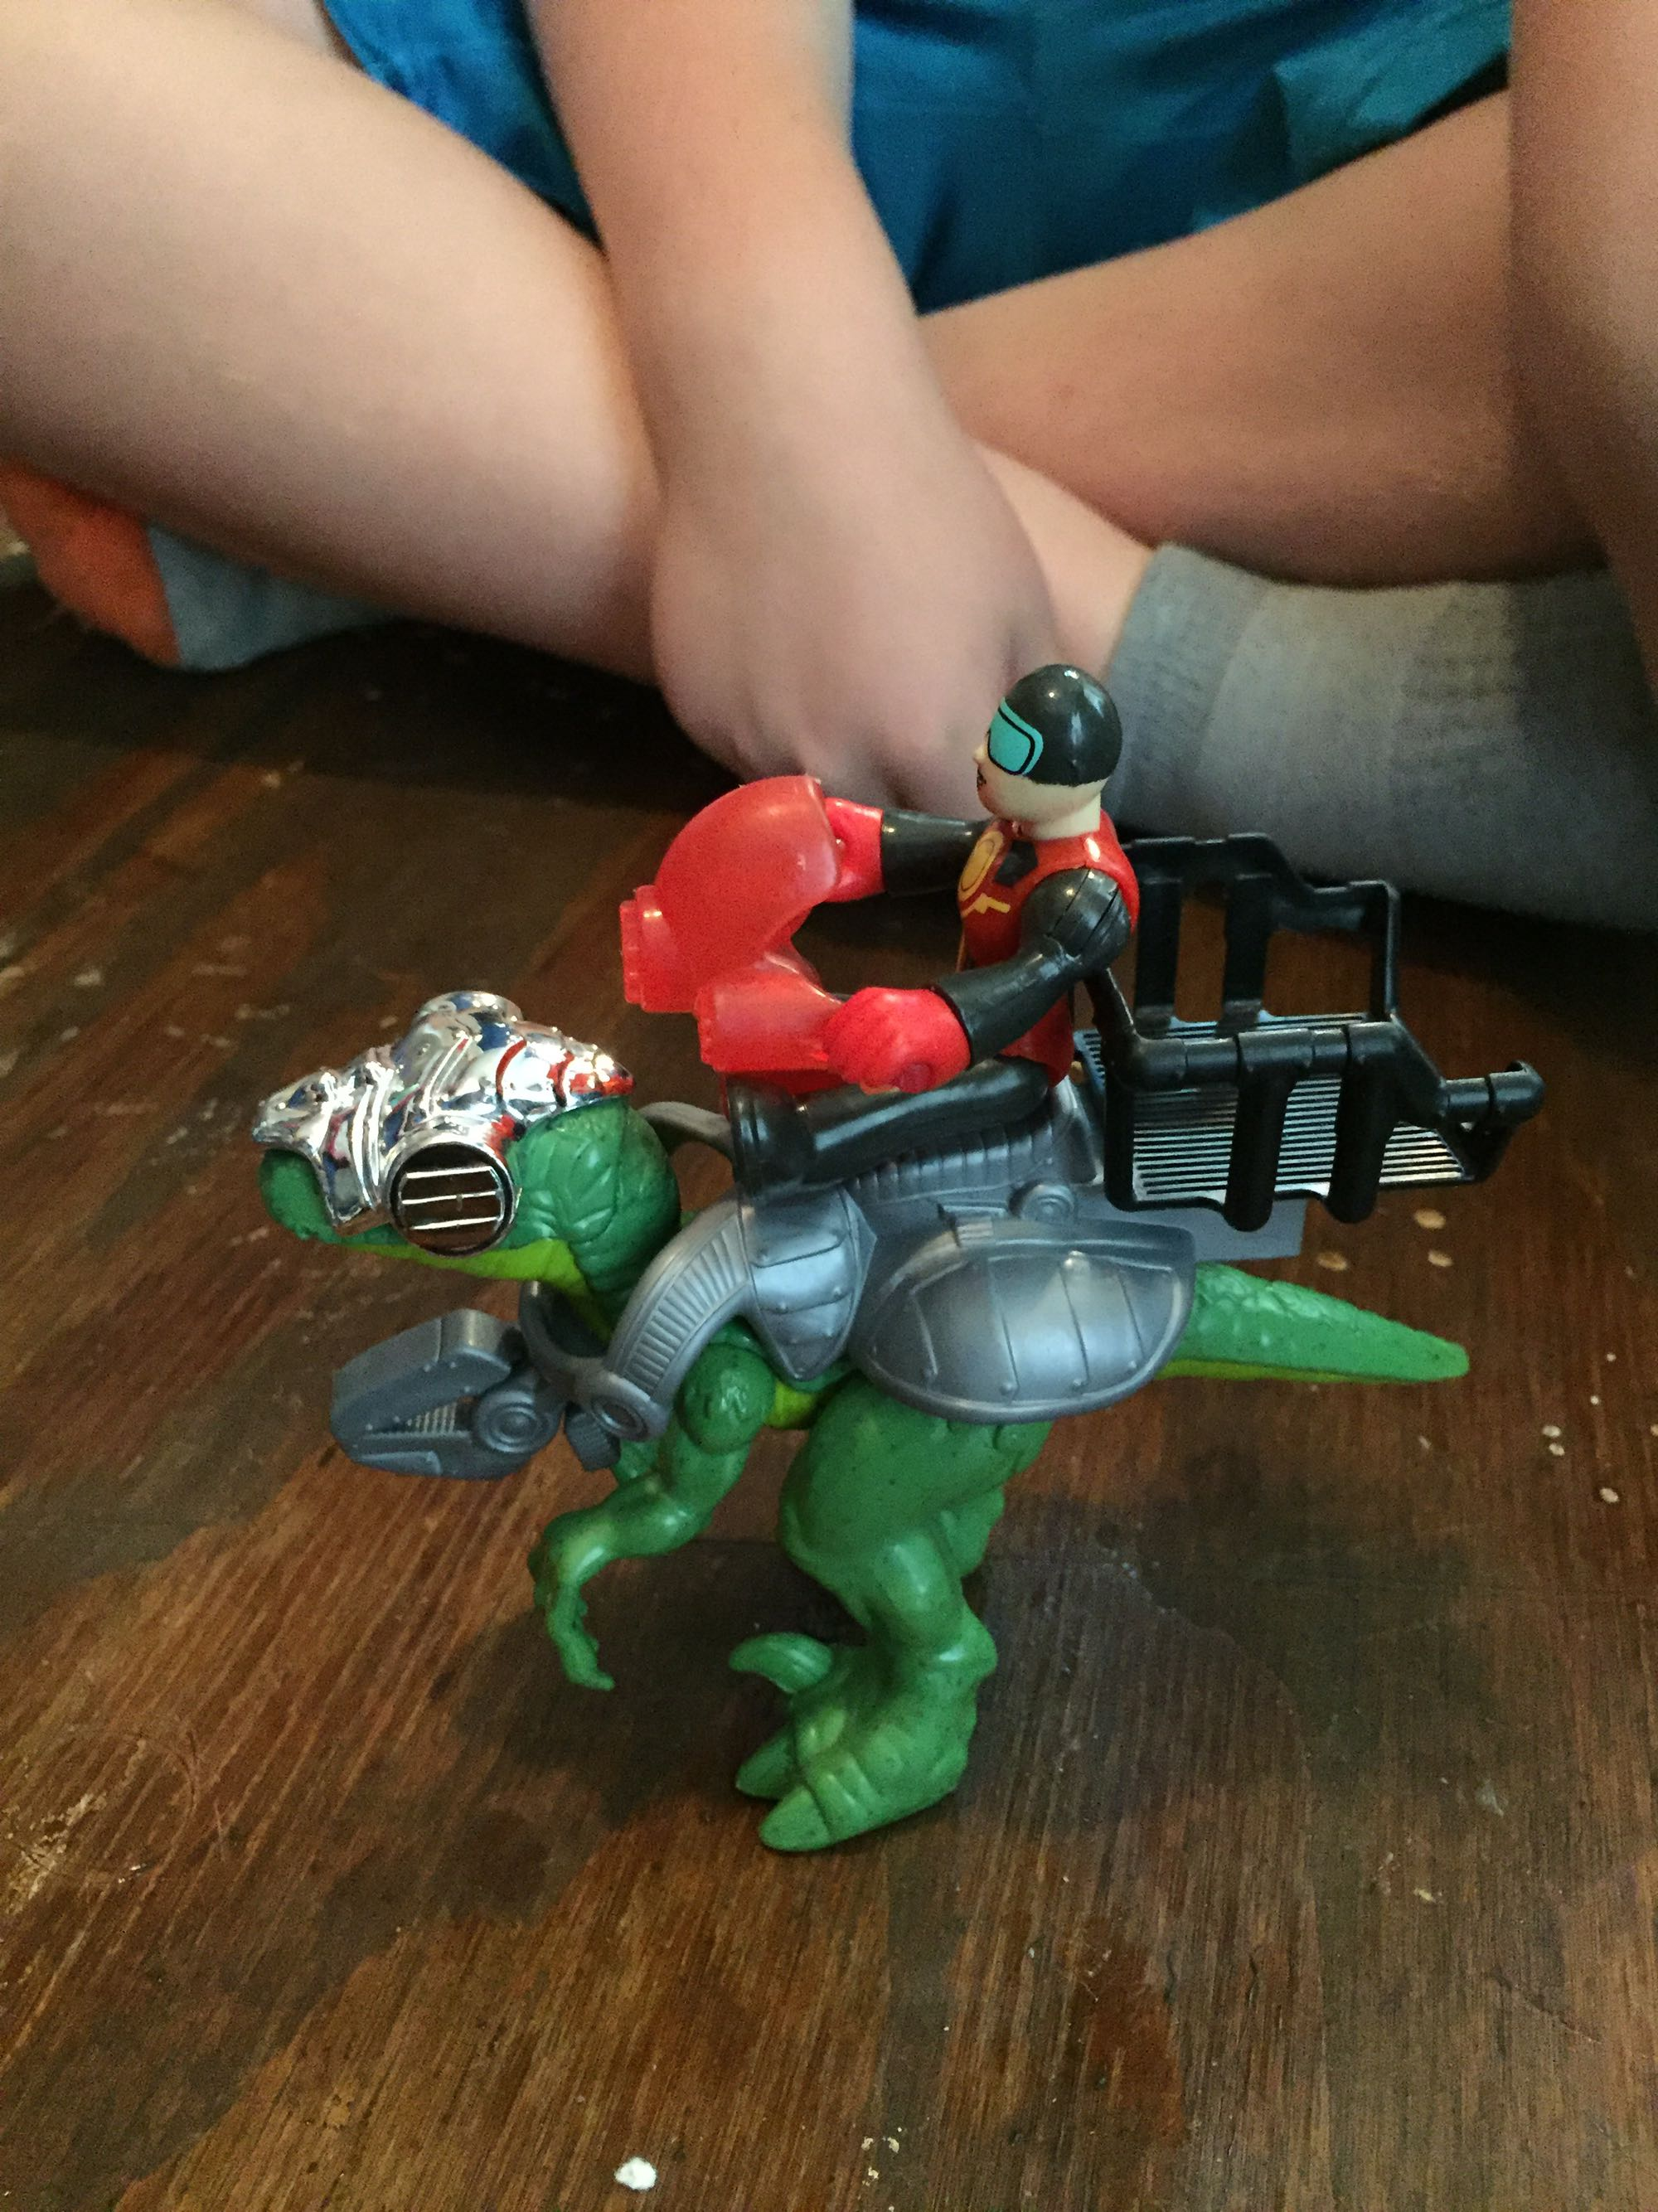 Fisher Price Imaginext Dinosaur